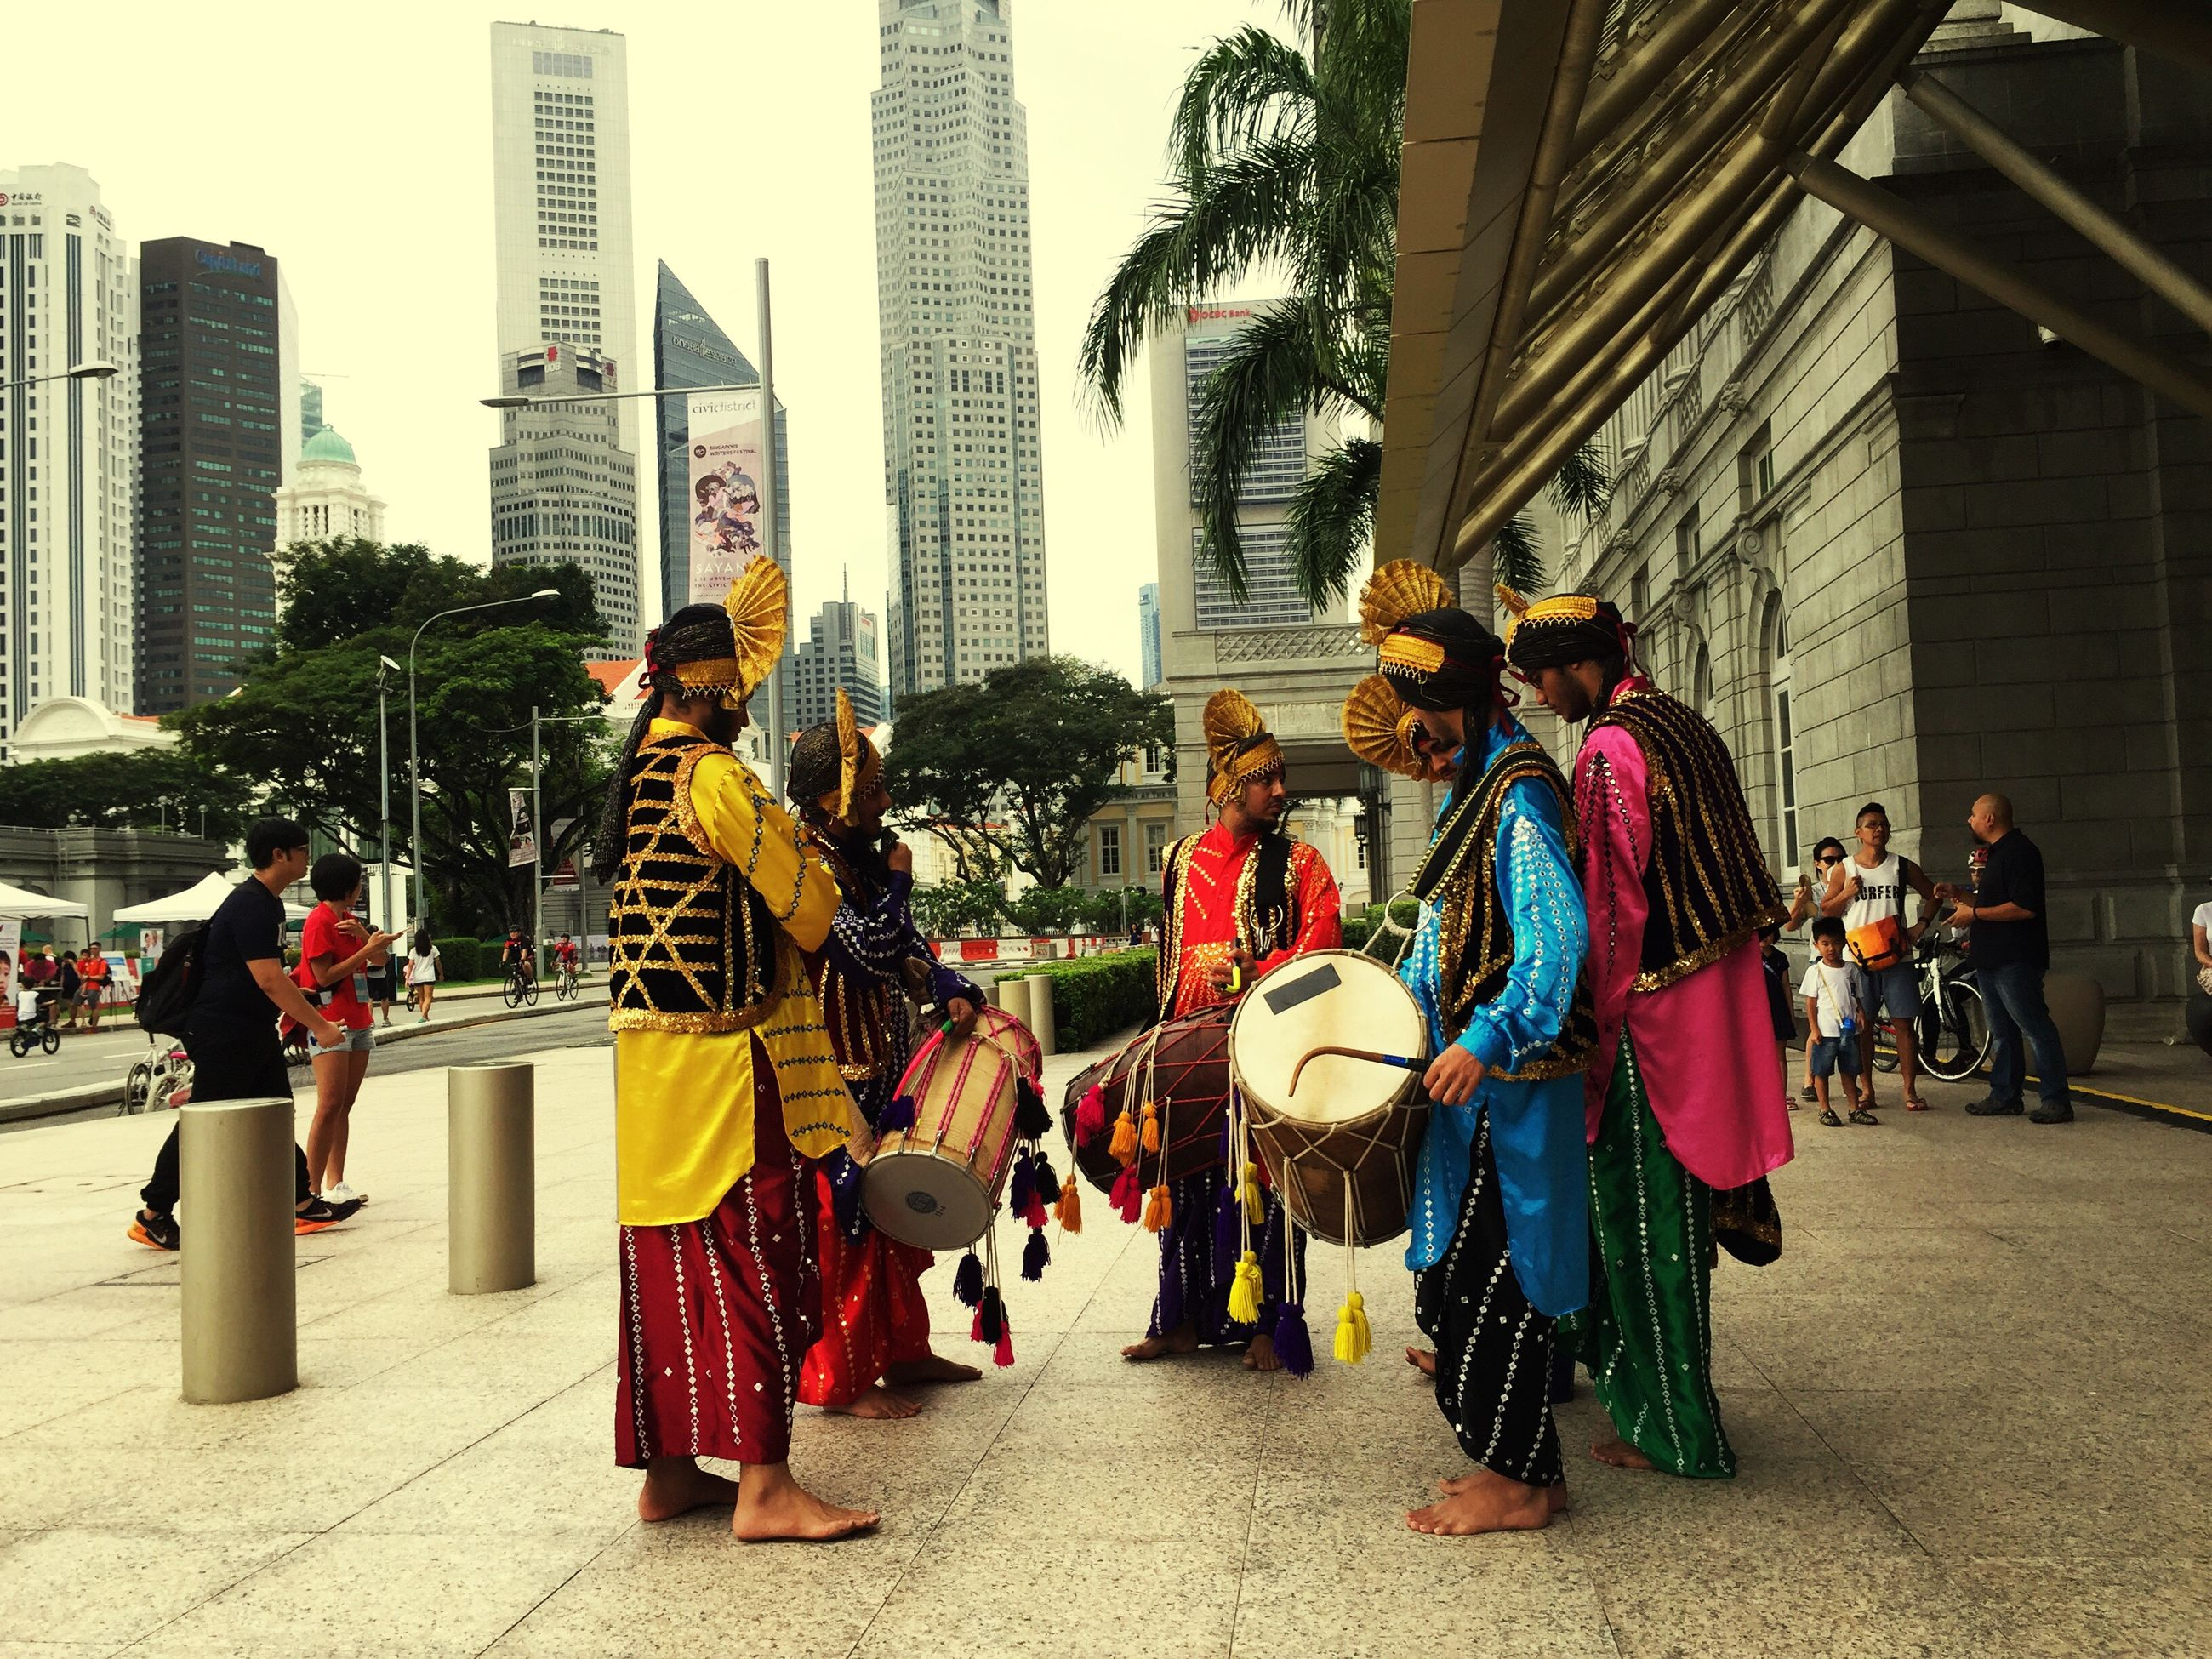 real people, architecture, built structure, full length, celebration, building exterior, medium group of people, city, music, traditional clothing, musical instrument, women, day, outdoors, men, parade, uniform, crowd, people, headwear, adults only, adult